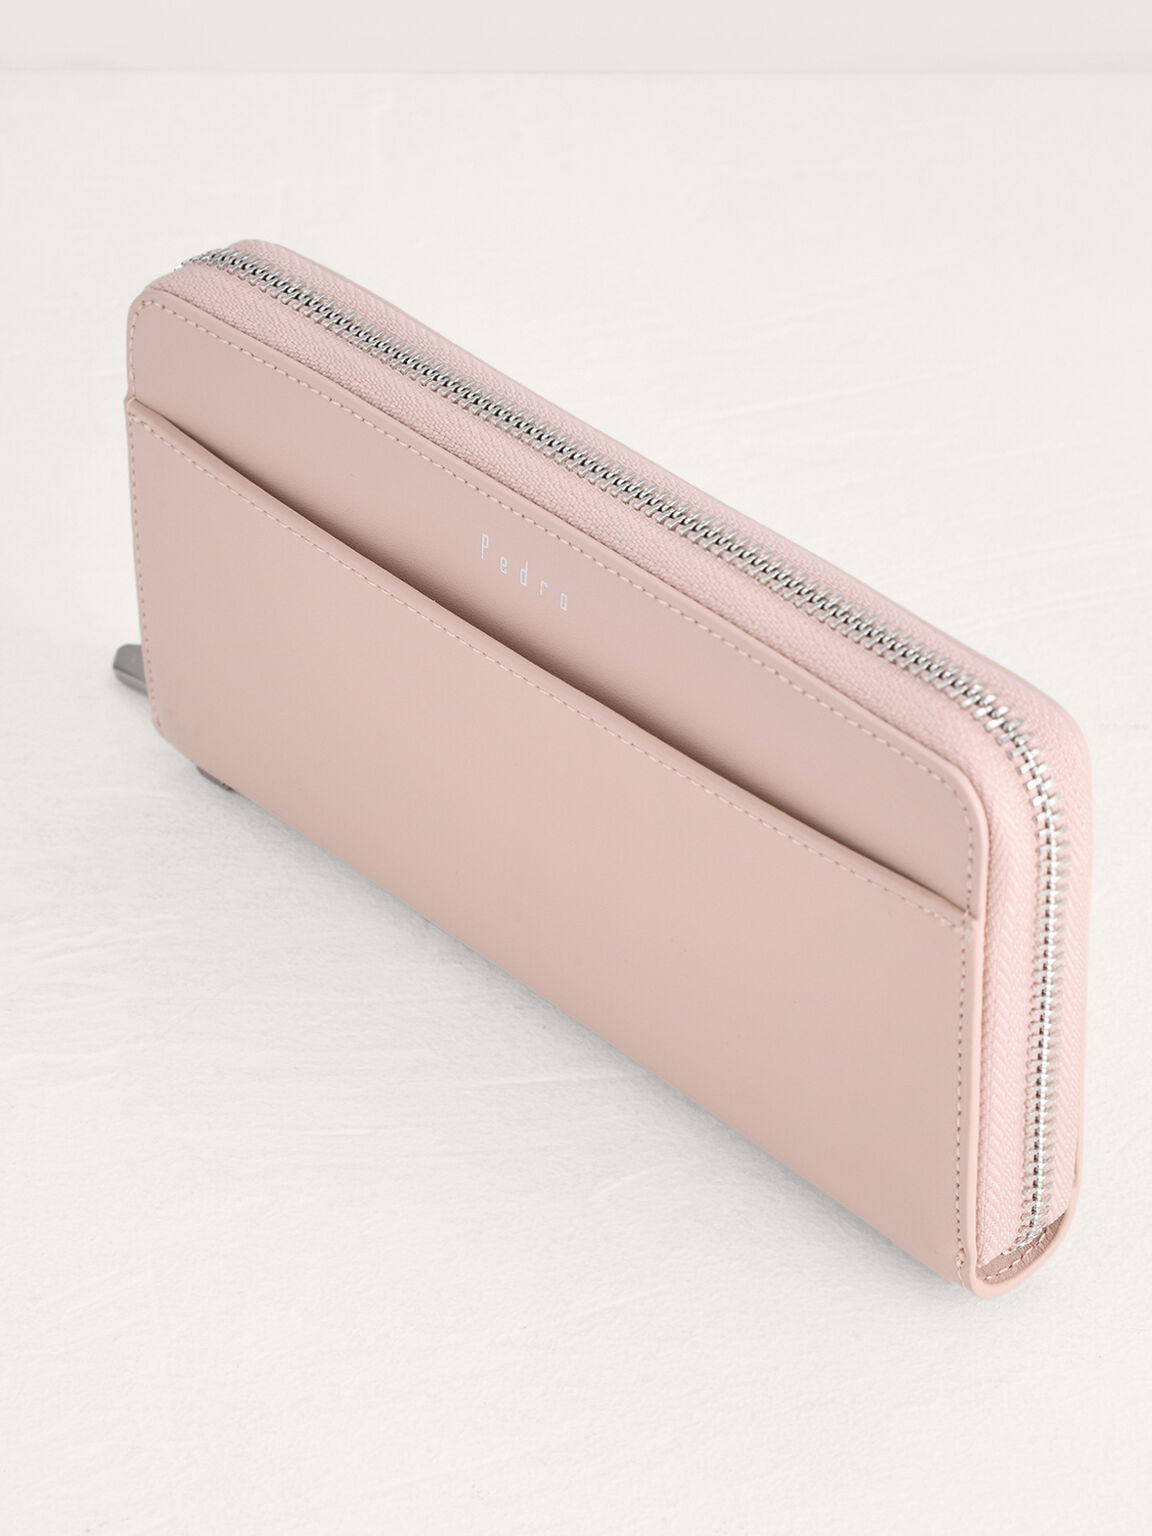 Leather Long Wallet, Nude, hi-res